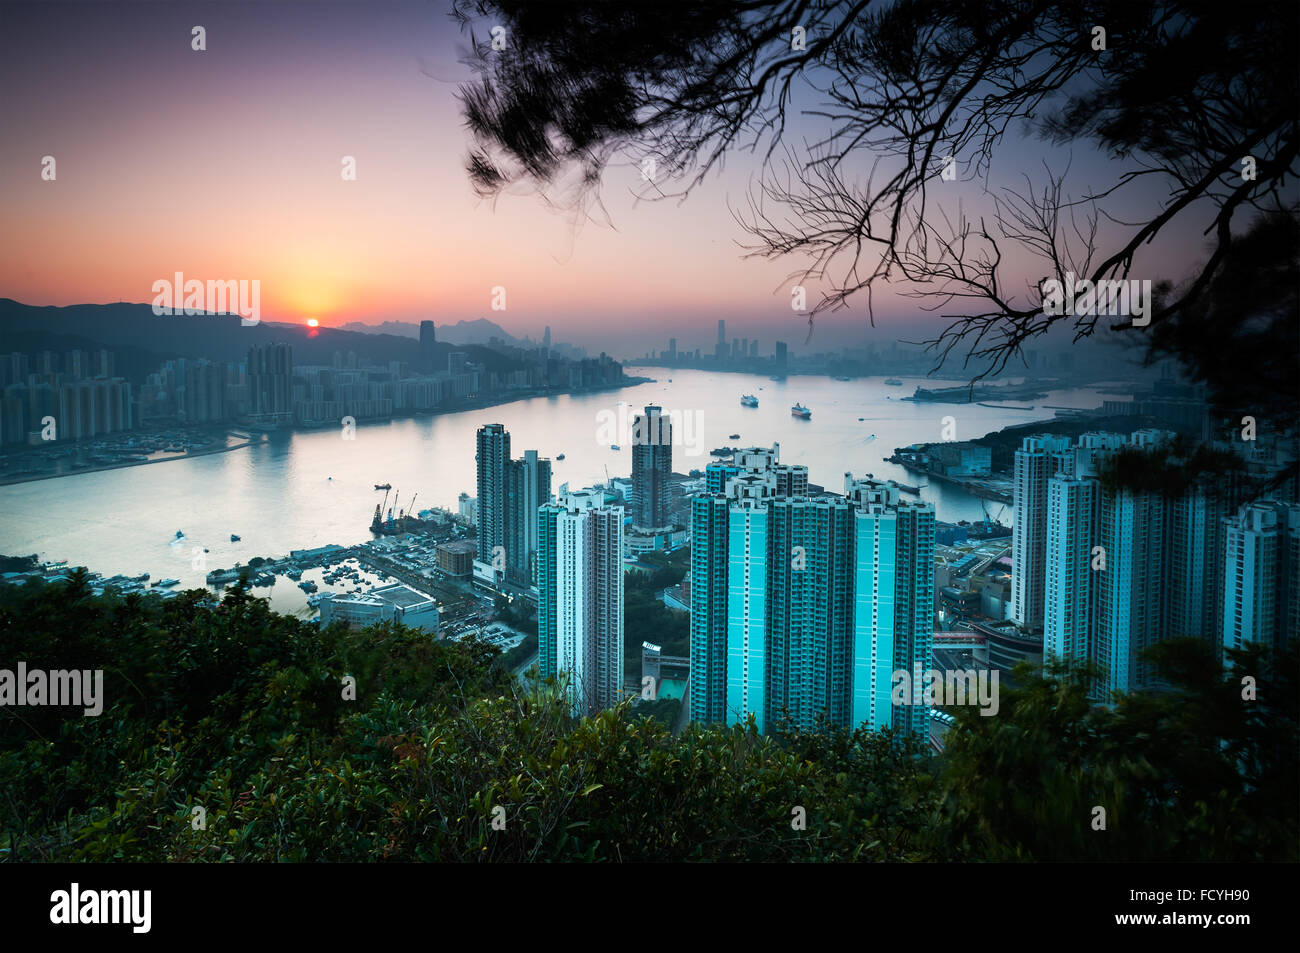 Sunset over Hong Kong Island as seen from Devil's Peak, Kowloon - Stock Image